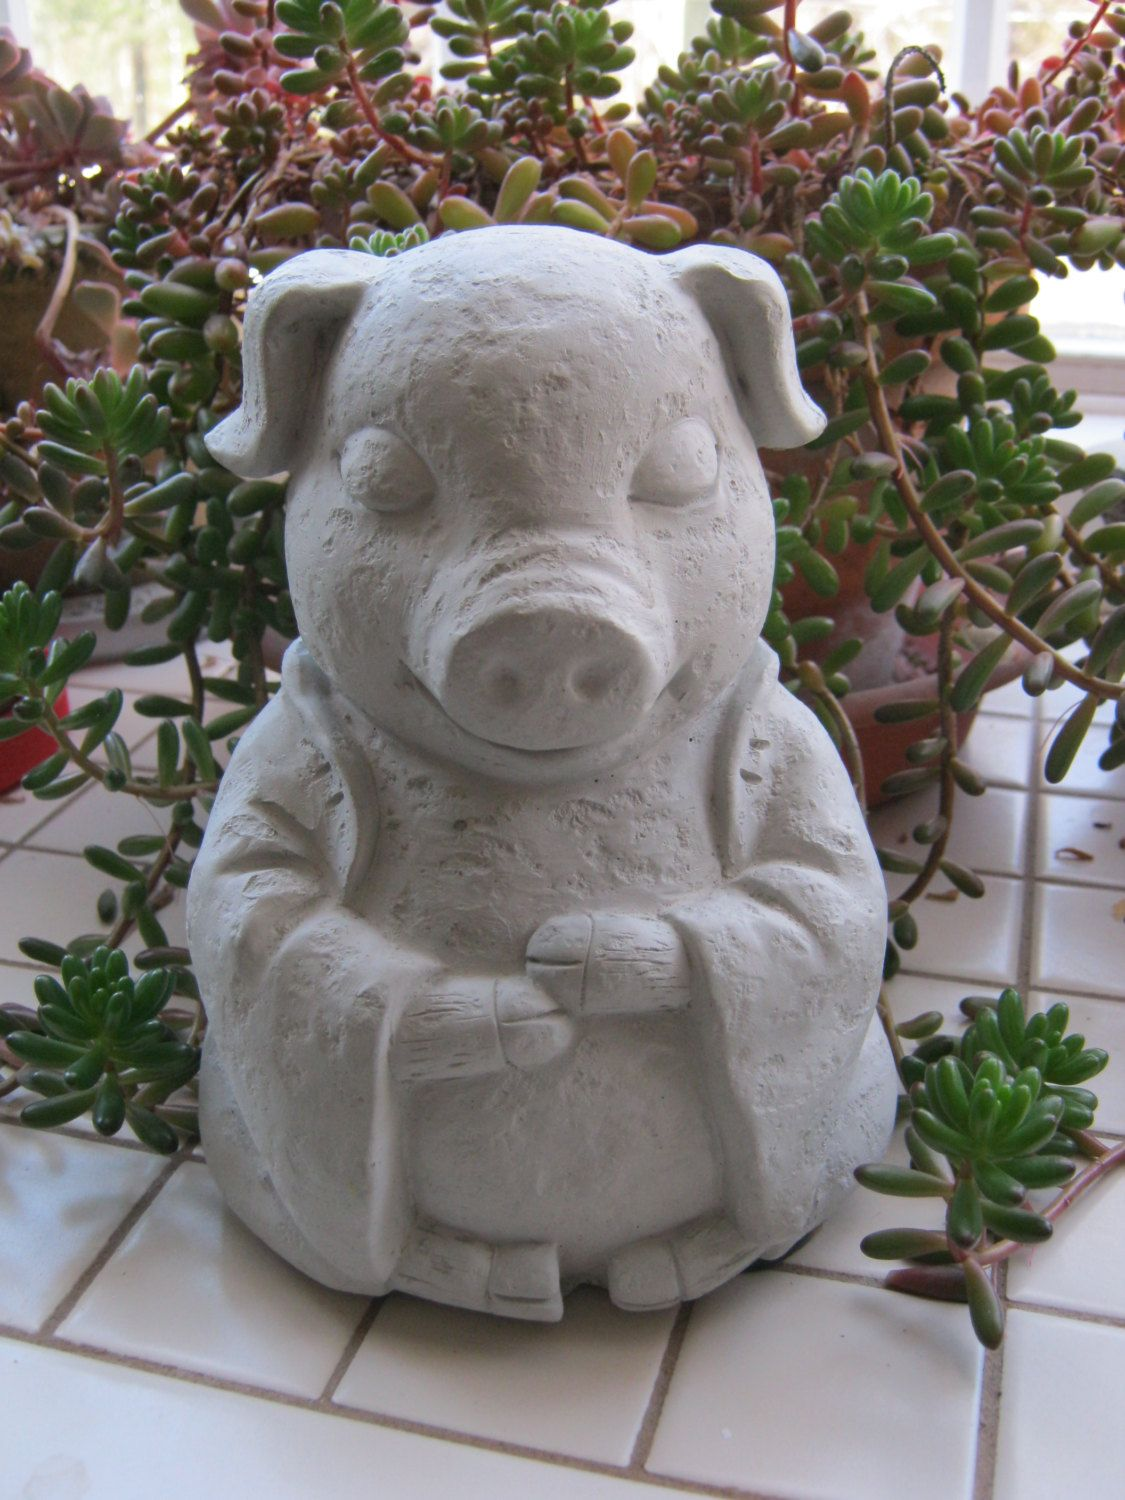 Pig Statue Meditating Like Buddha Pigs Zen Animals Figures In Contemplation By Westwindhomegarden On Etsy